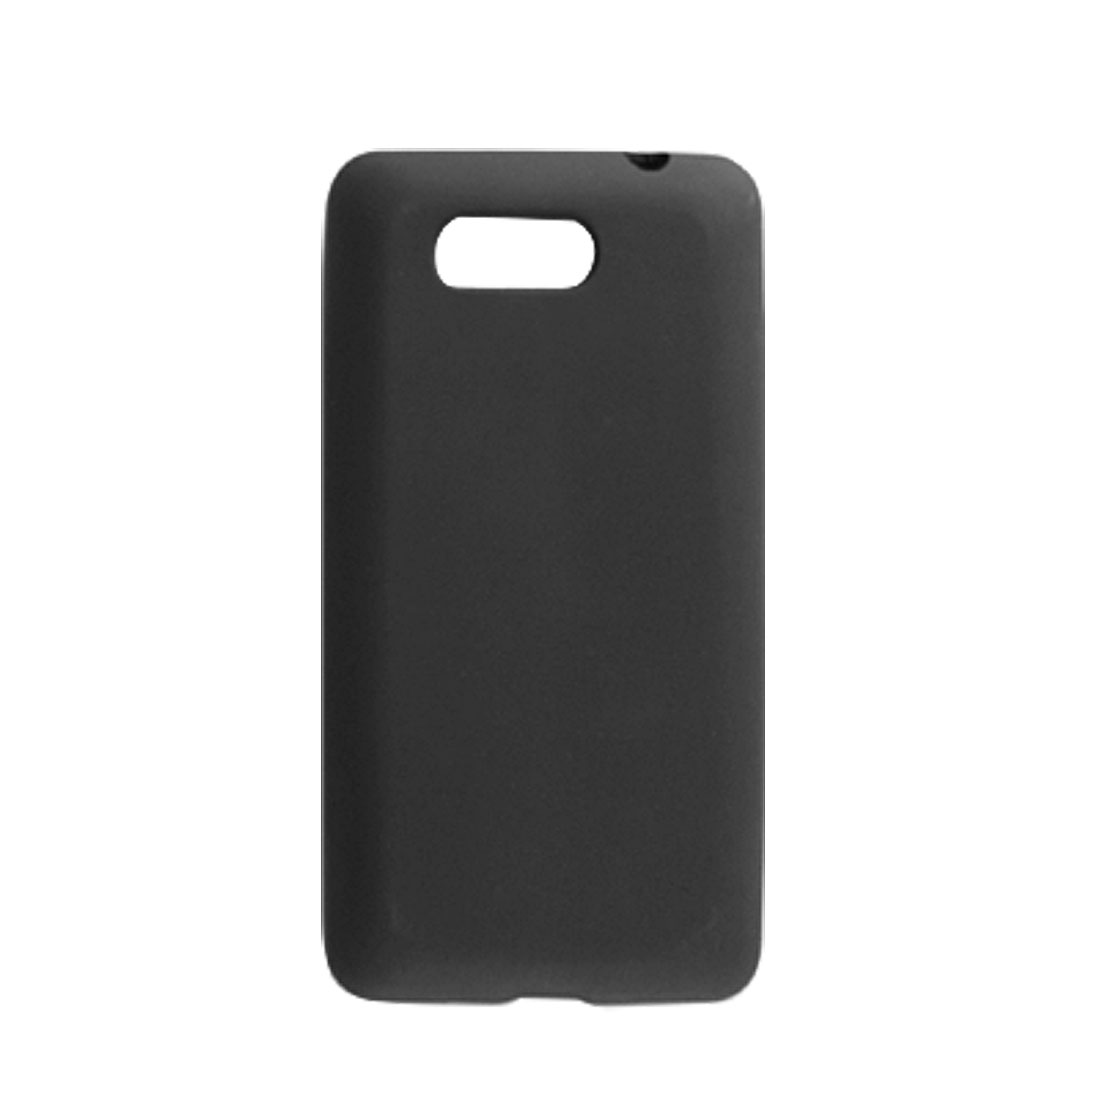 Black Soft Protective Back Case Shell for HTC HD MINI